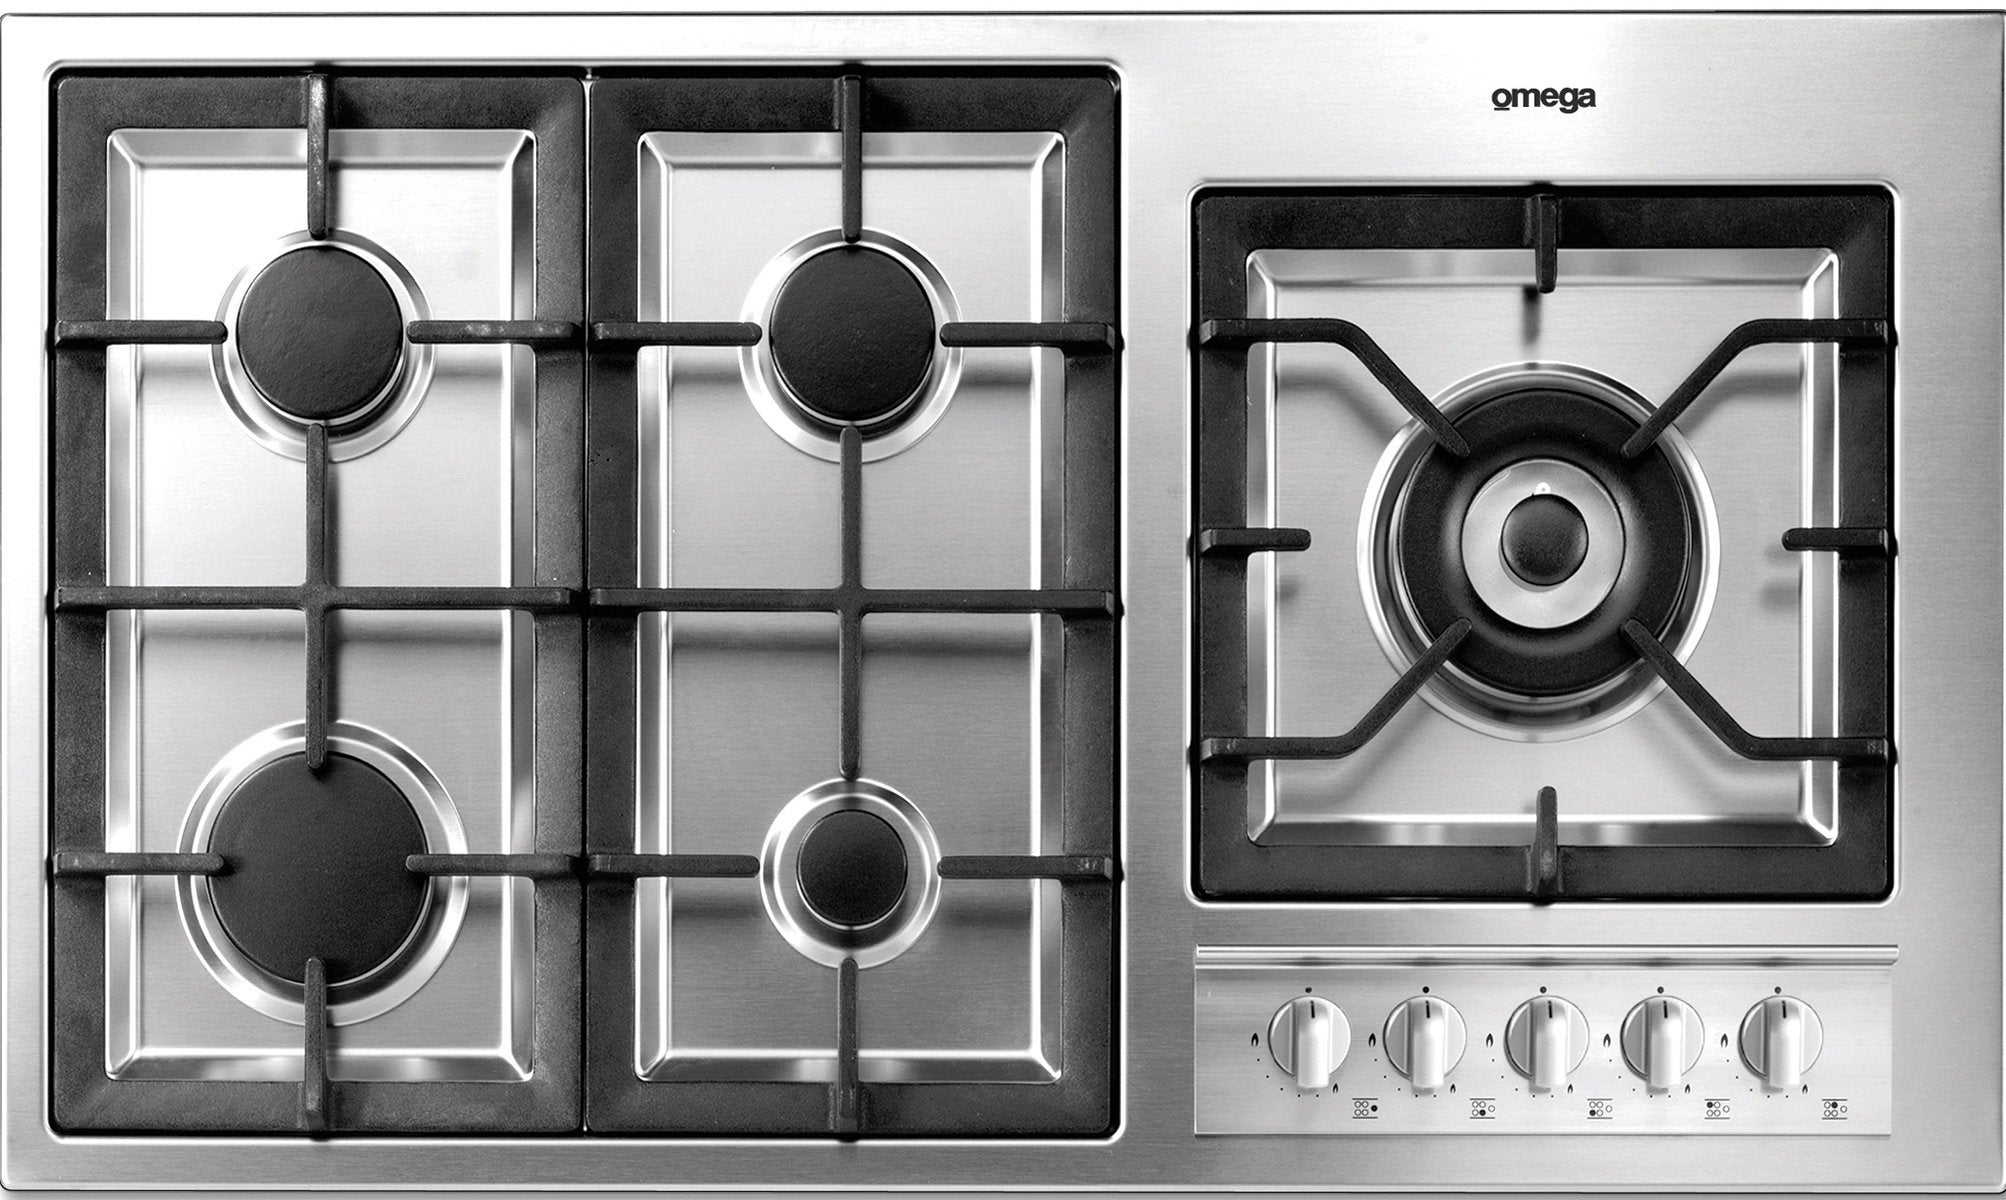 Omega cooktop review